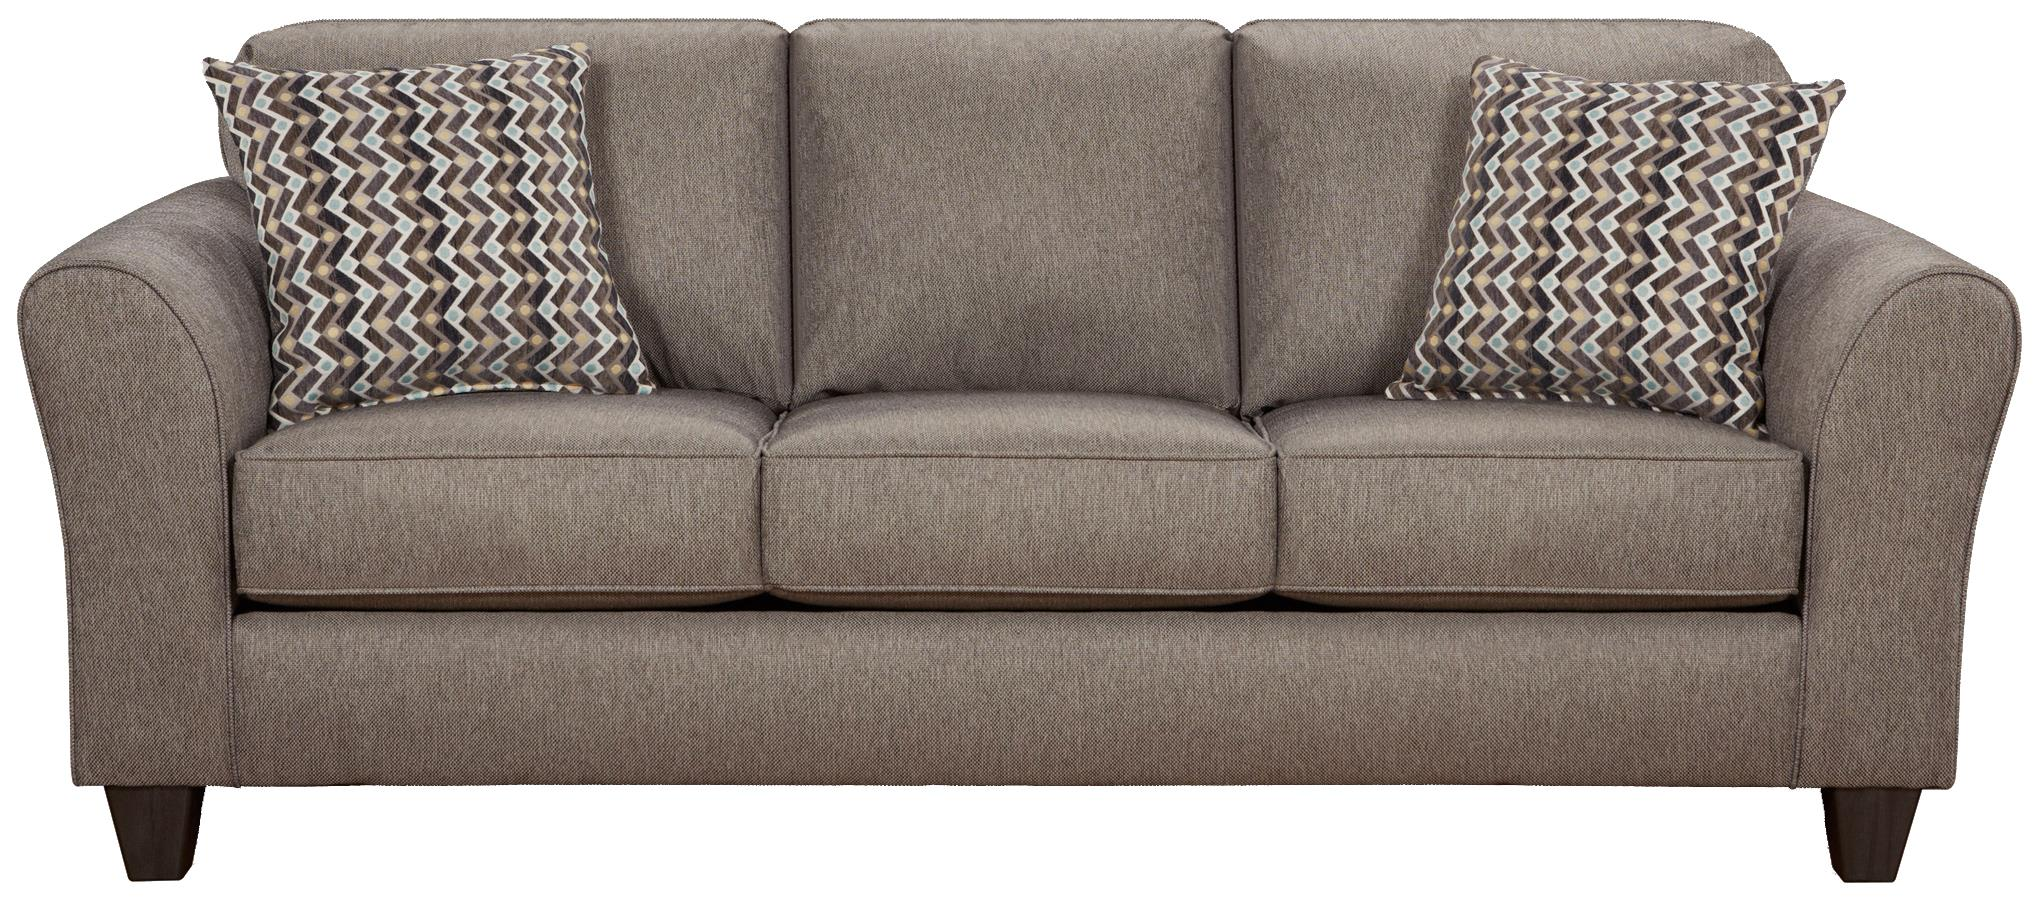 5000 Sofa by Affordable Furniture at Wilcox Furniture